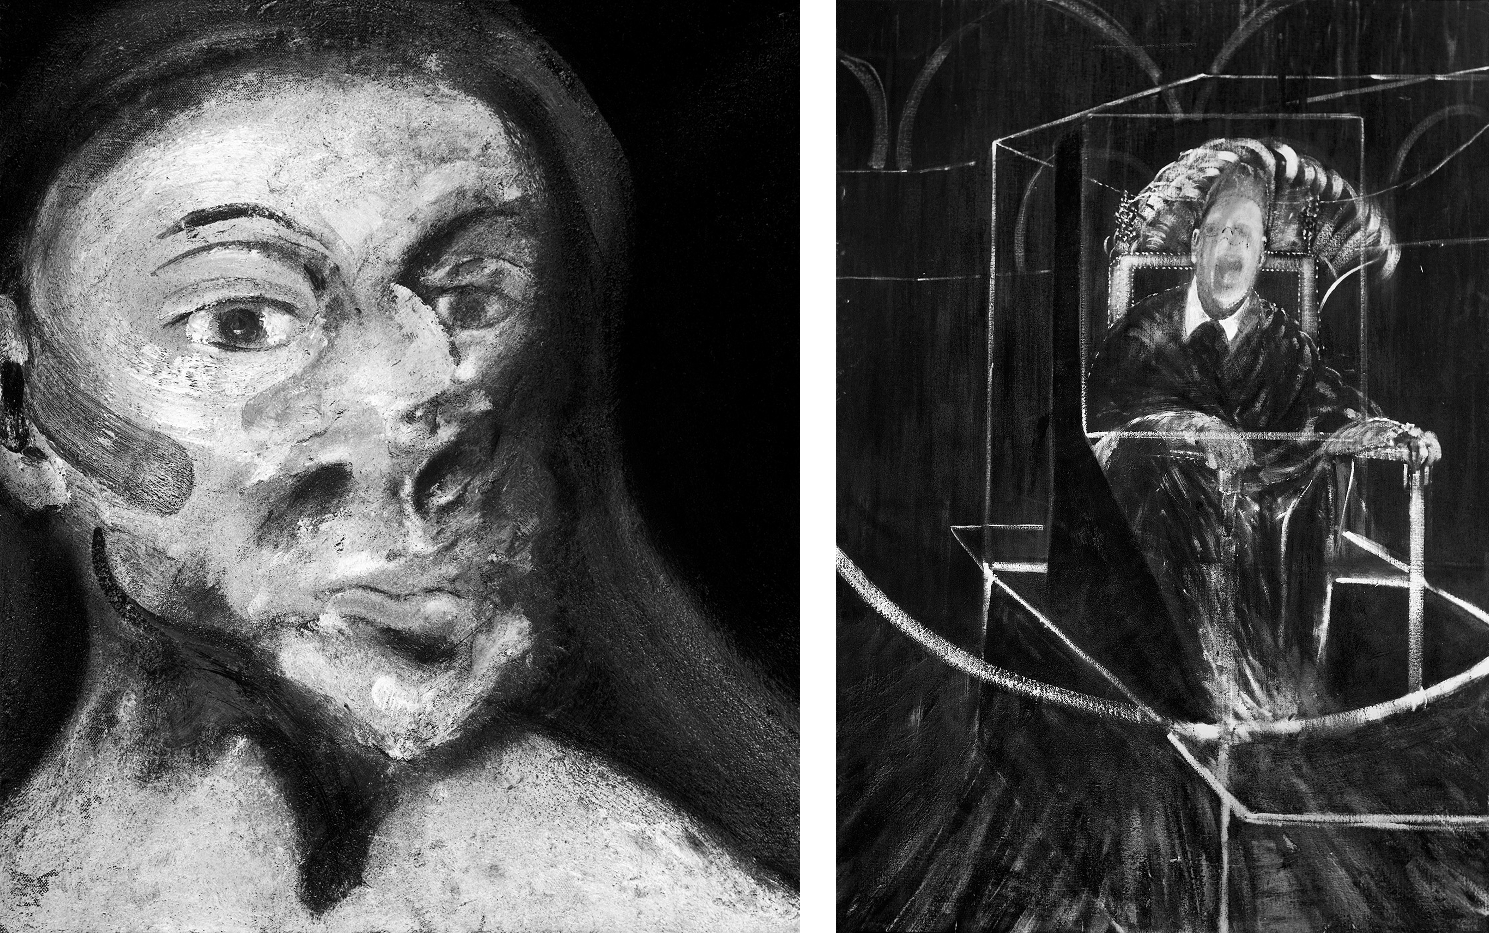 Decorative B&W images: Francis Bacon's Head of Woman, 1961 and Pope III, 1951.